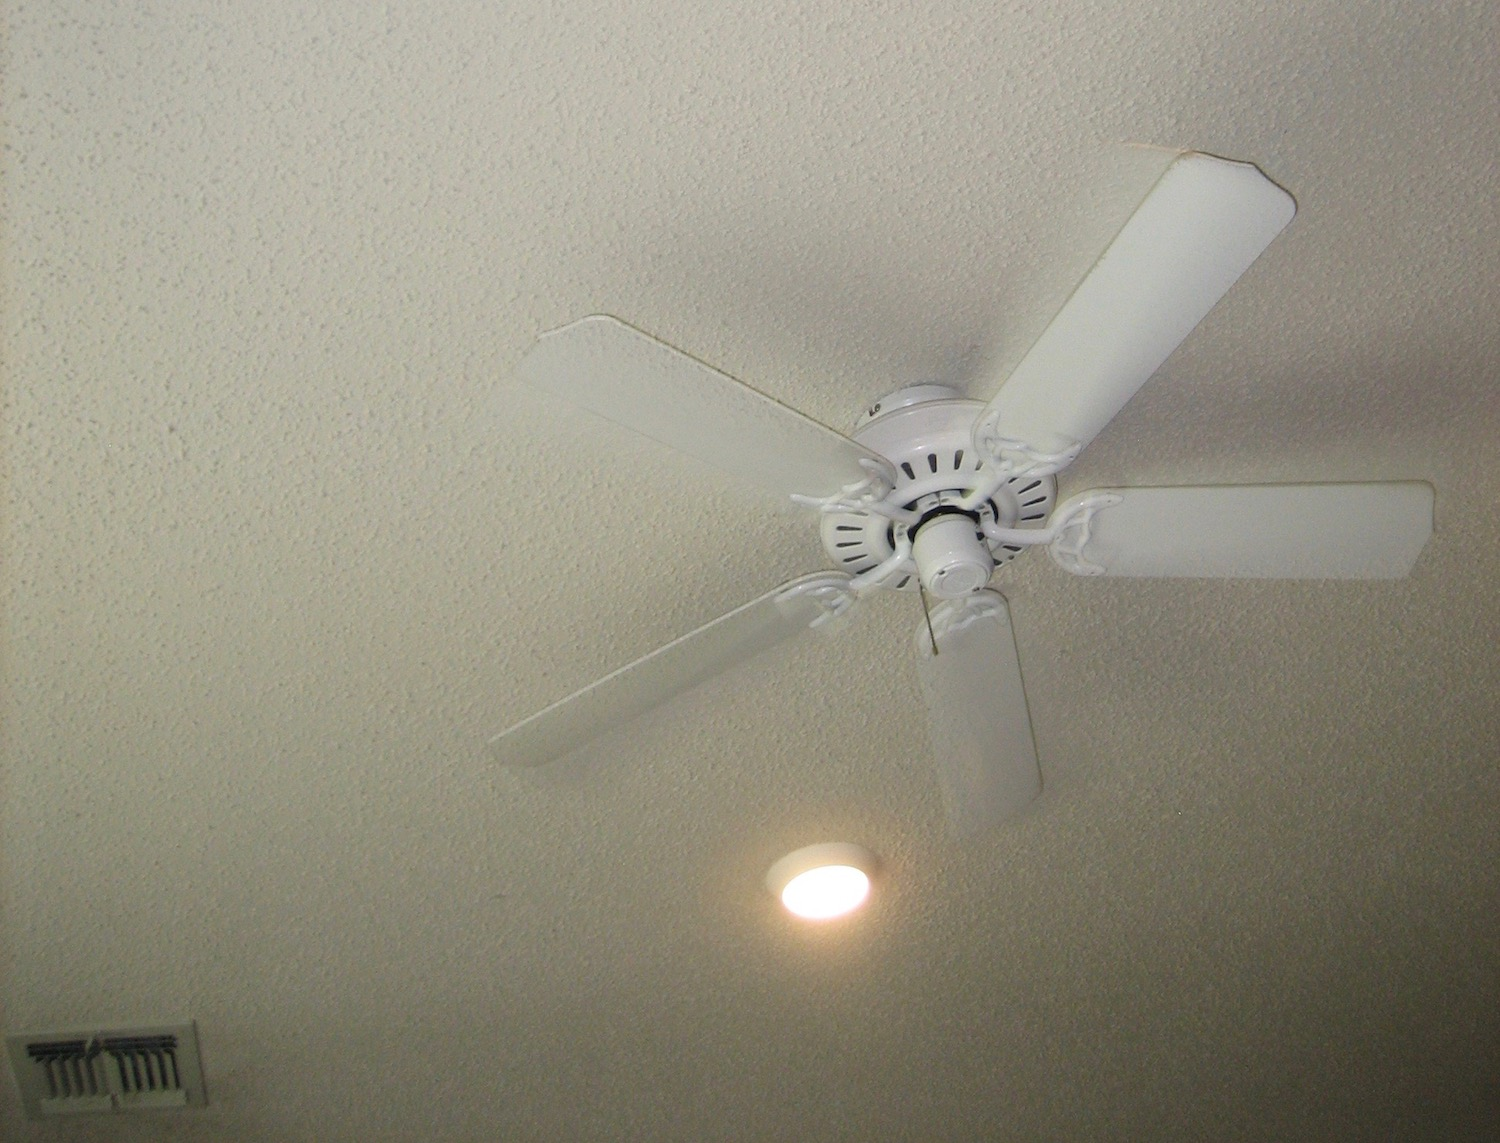 Image: I have no idea why, but my six-year-old is obsessed with taking pictures of ceiling fans. Thi...